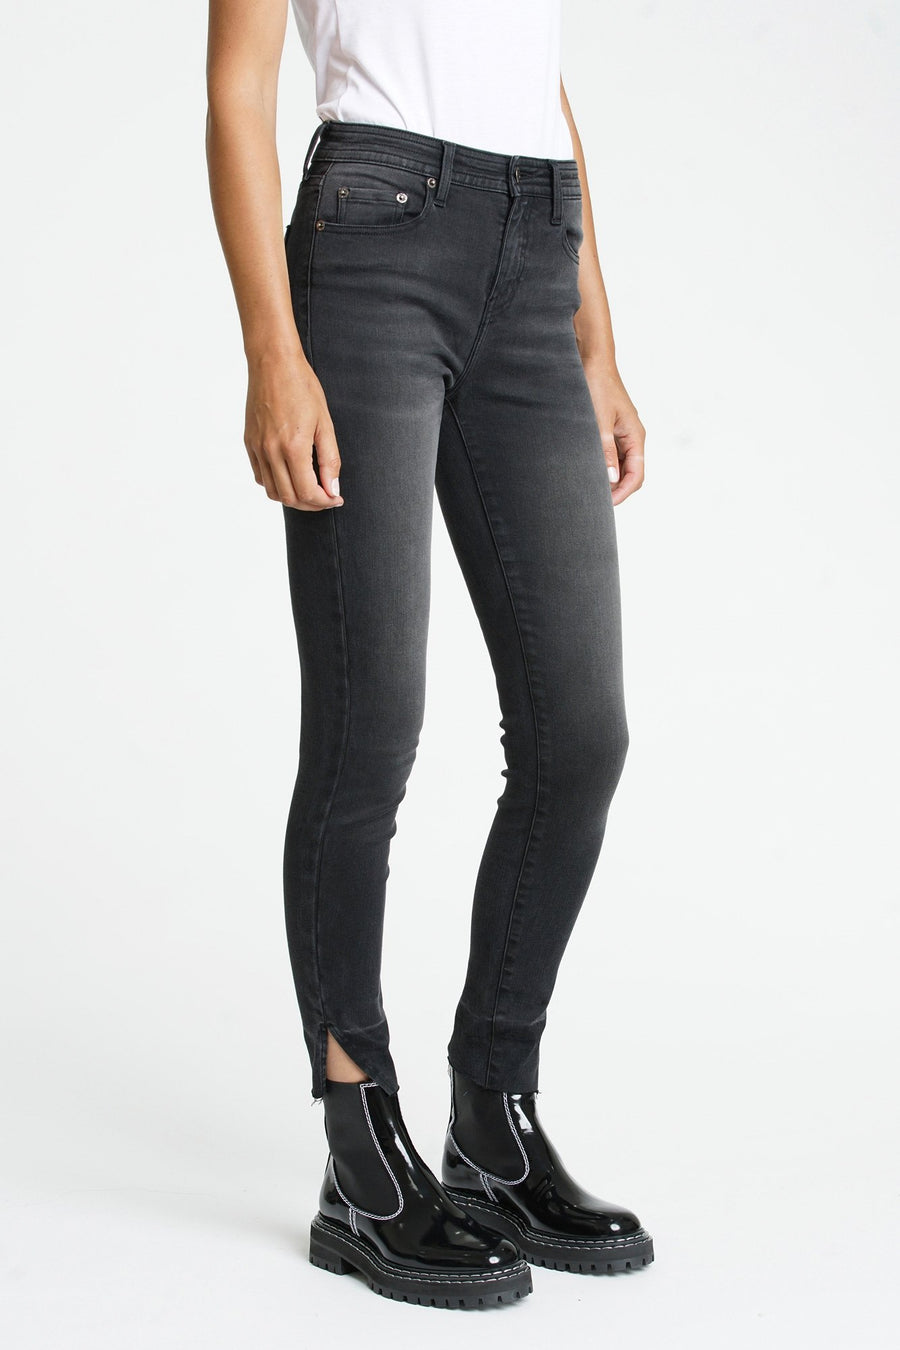 Pistola Audrey Mid Rise Skinny Jean in Drama Queen